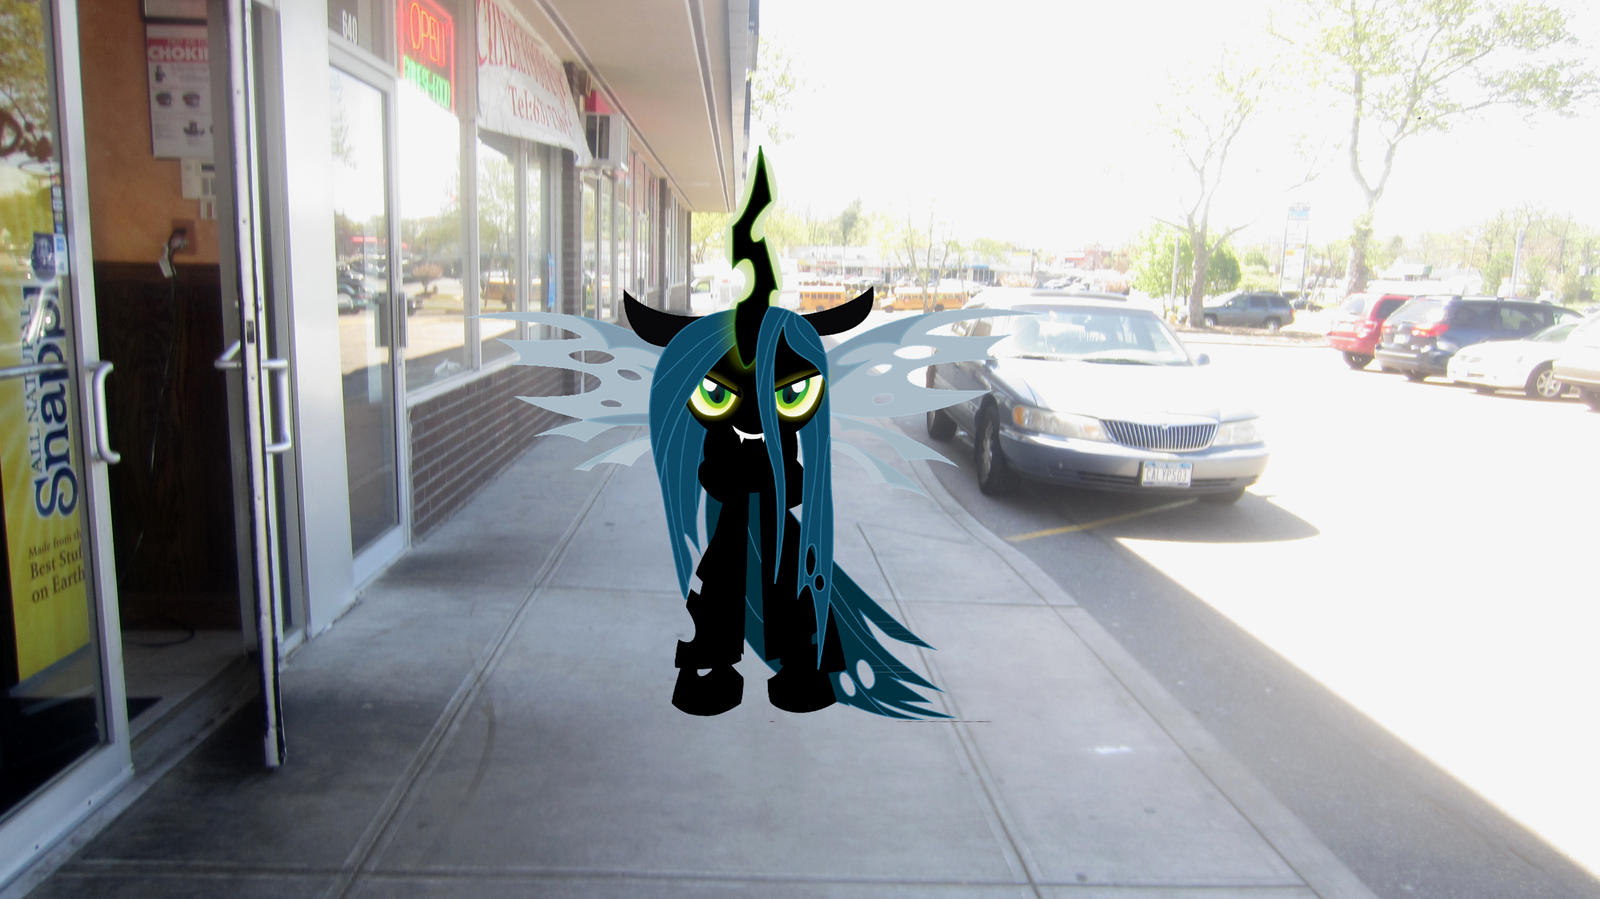 Queen Changeling Chrysalis can see me    by MetalGriffen69. Queen Chrysalis wakes me up by MetalGriffen69 on DeviantArt